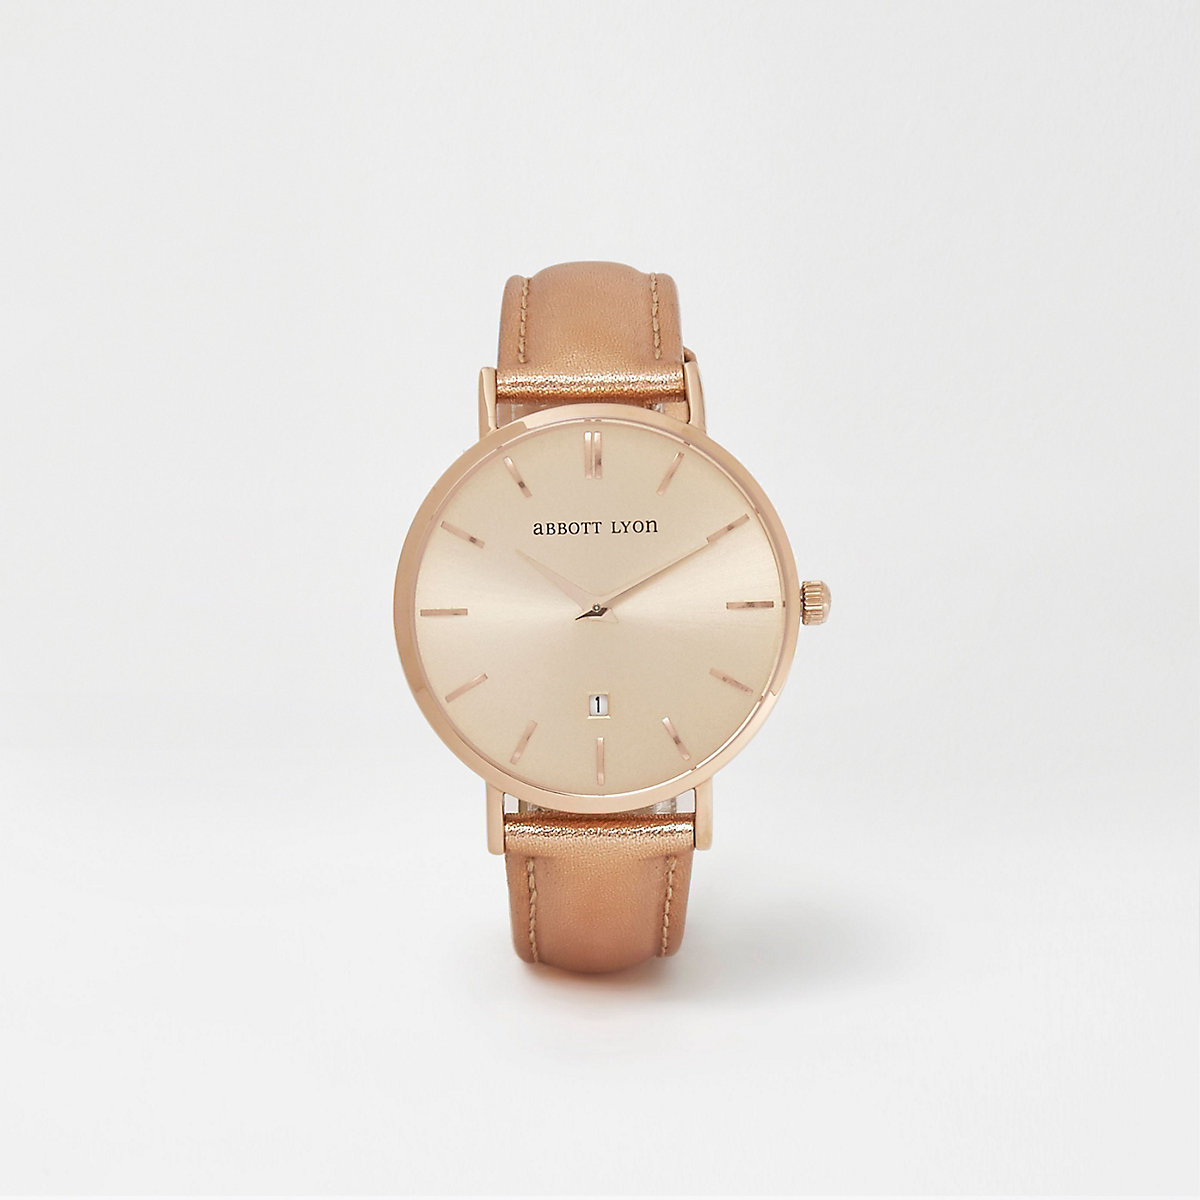 Metallic rose gold leather Abbott Lyon watch